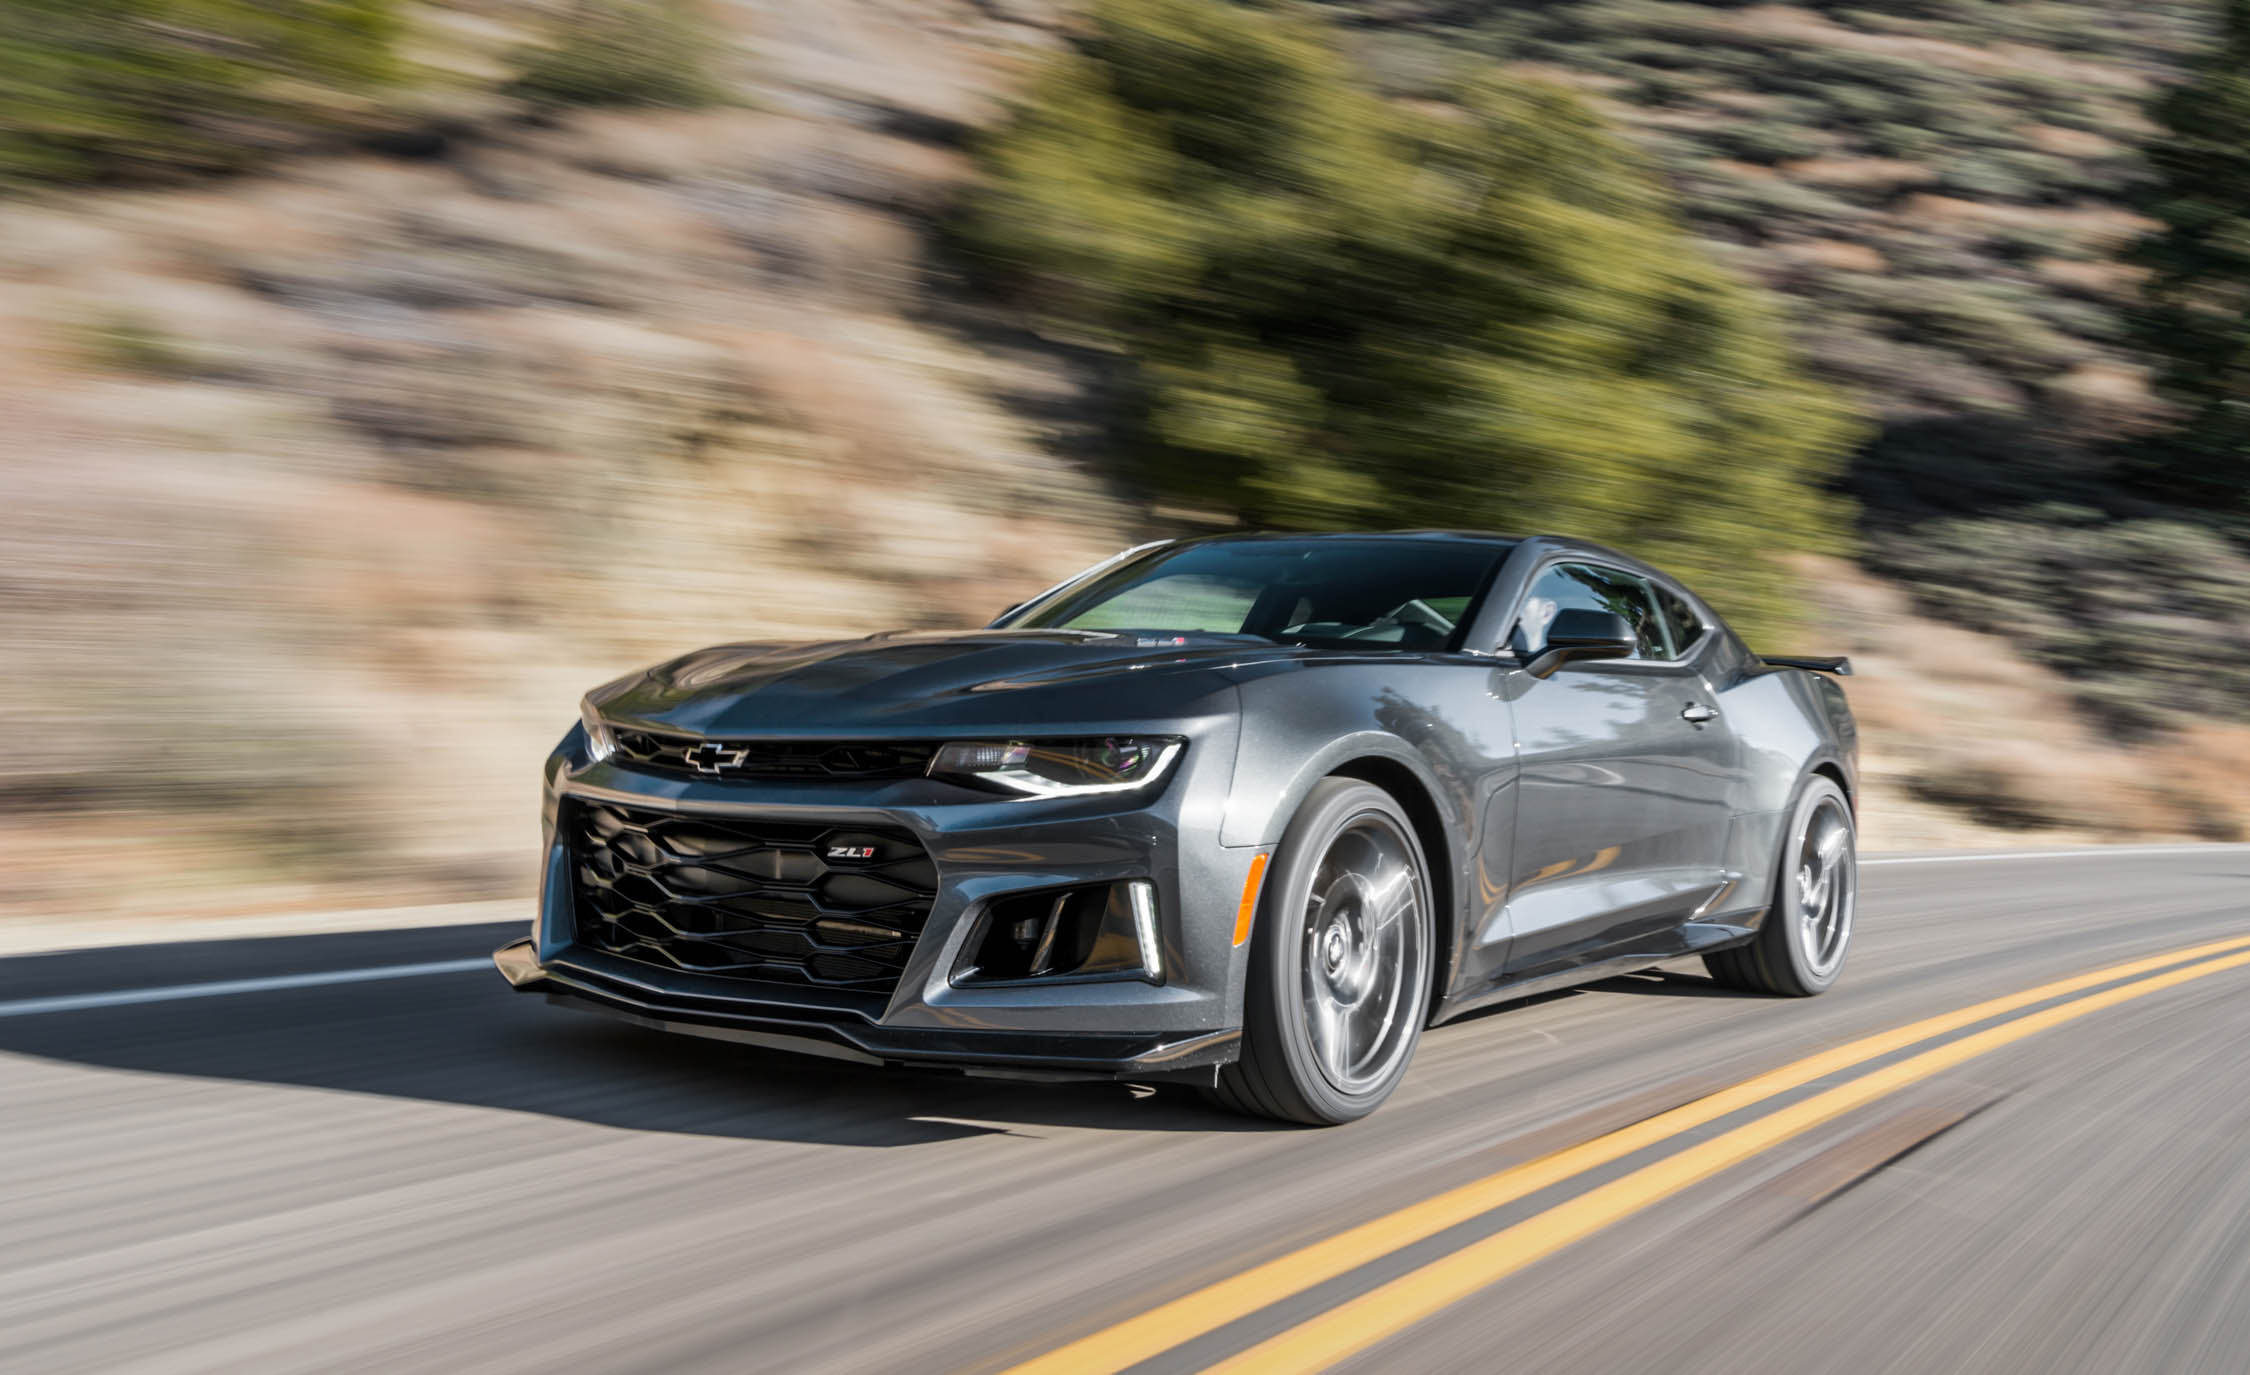 2017 Chevrolet Camaro ZL1 Grey Test Drive (Photo 15 of 62)